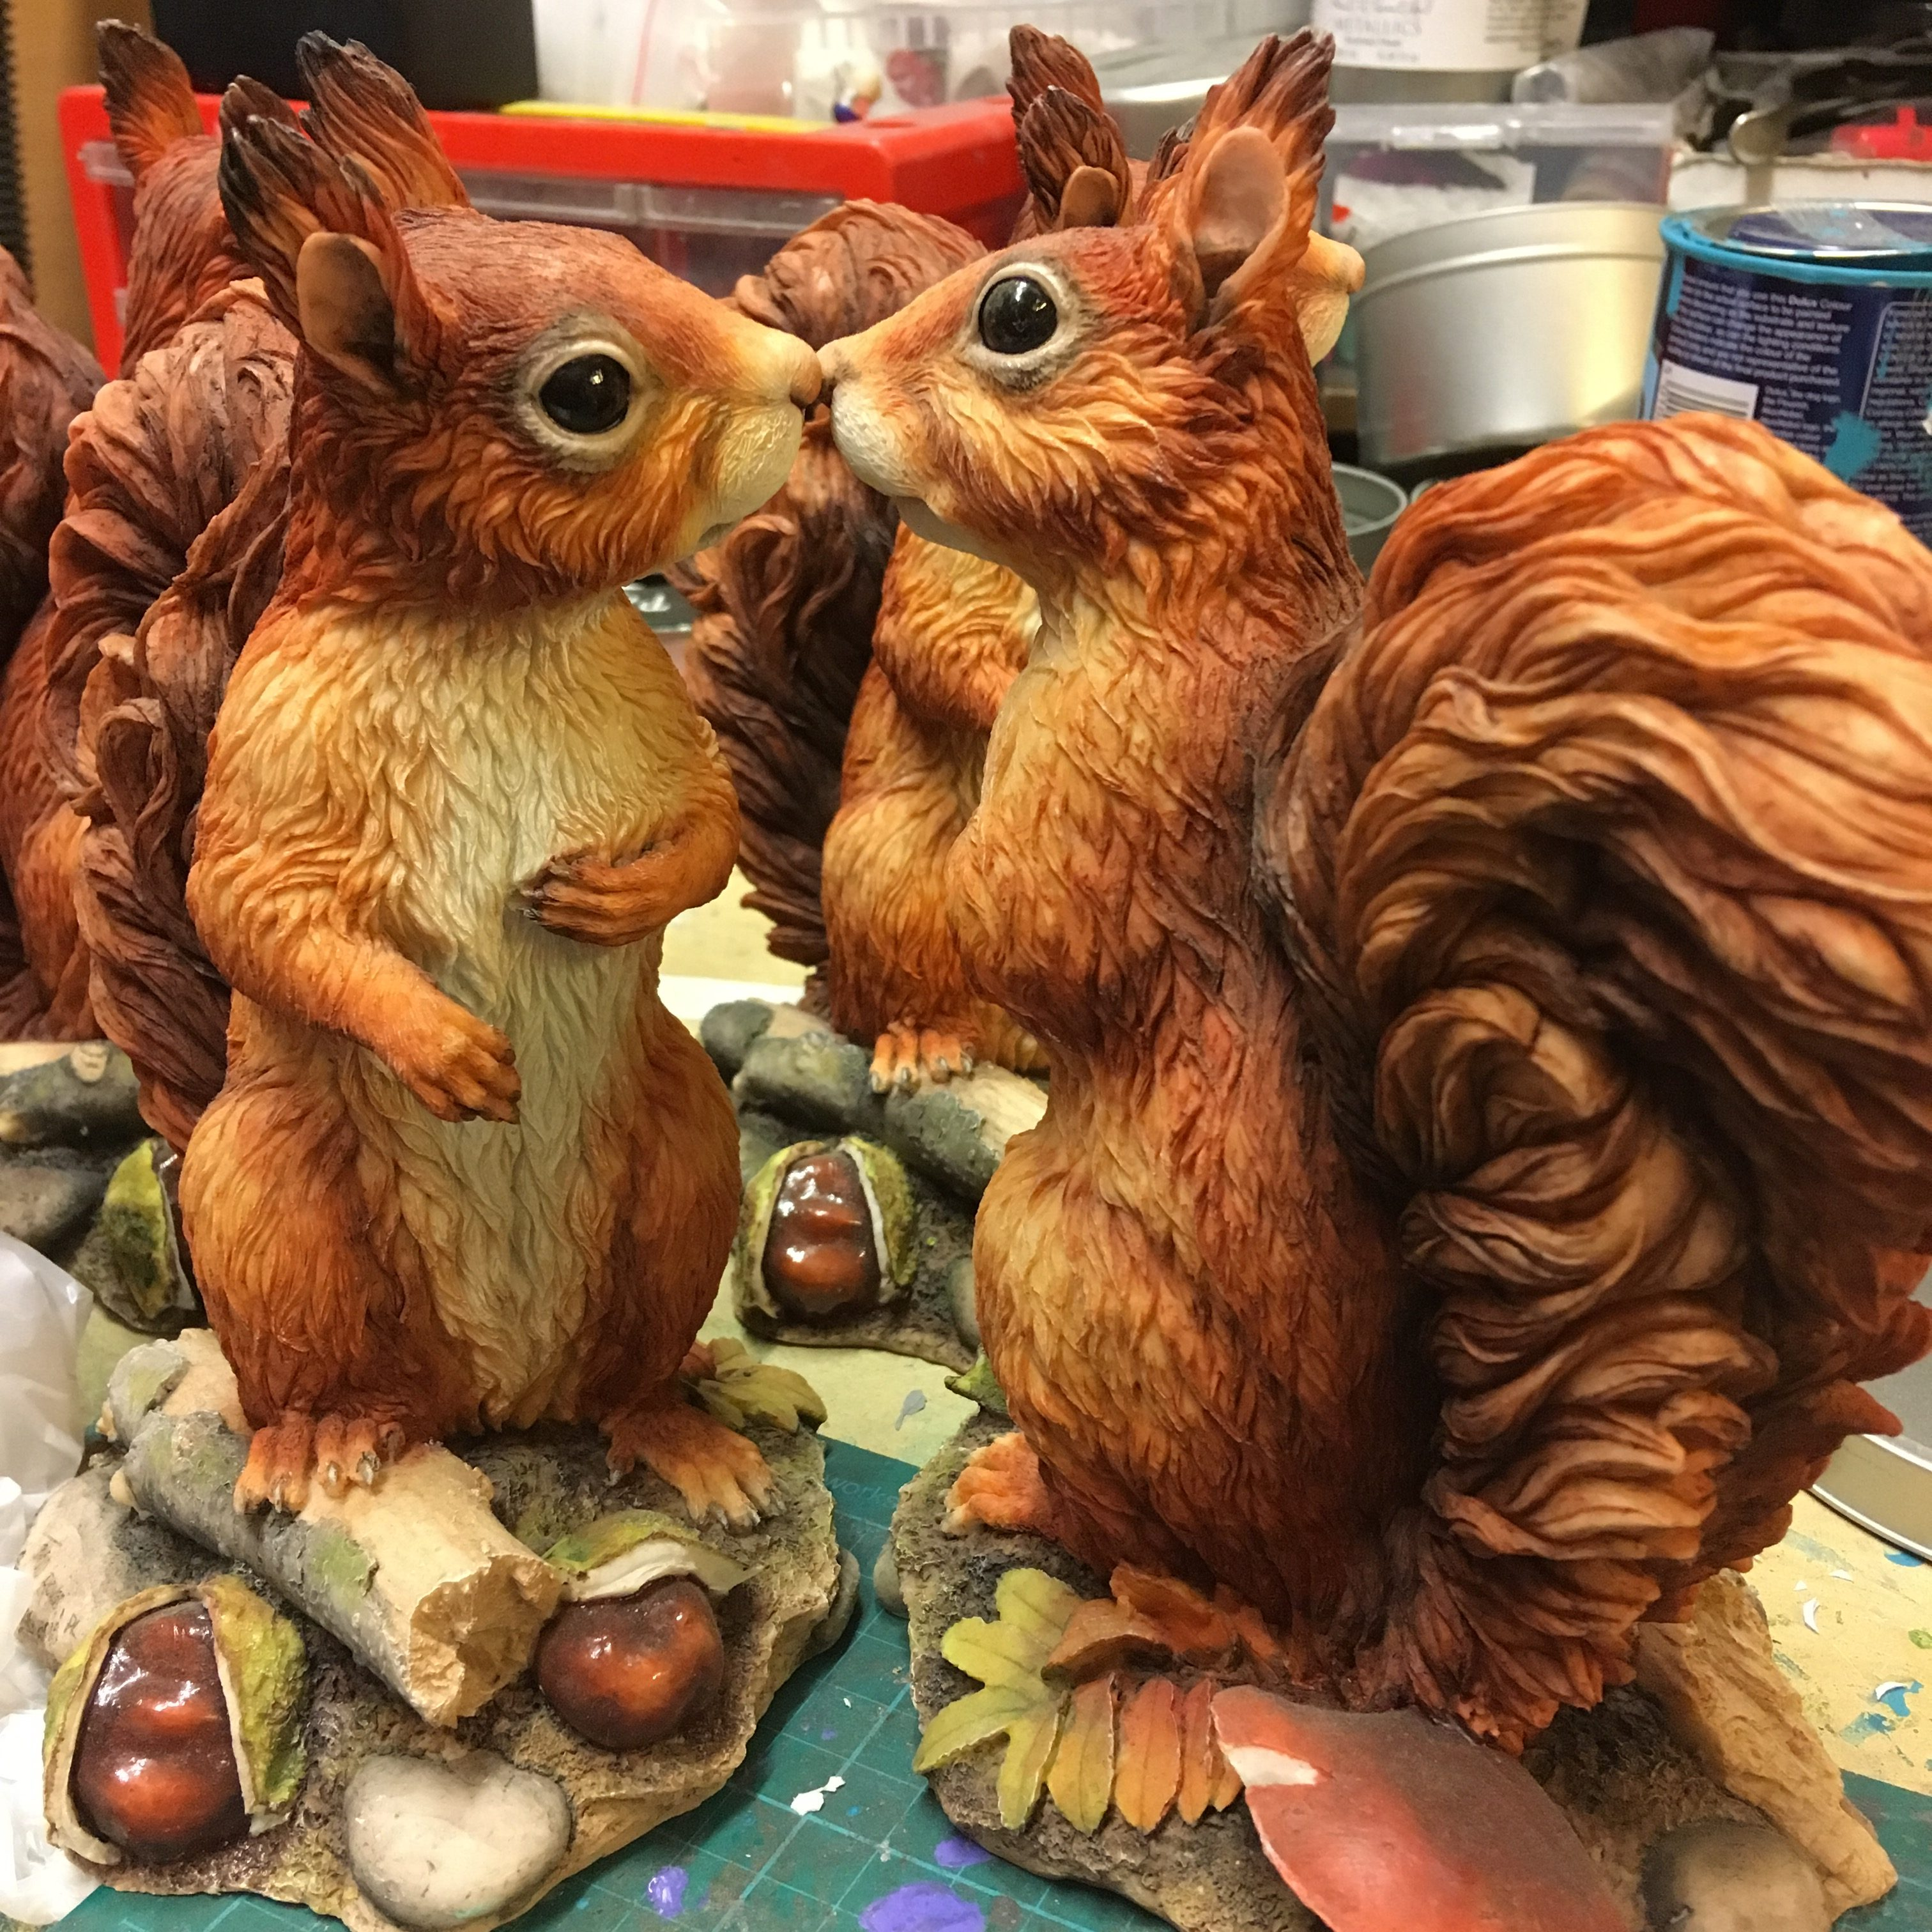 Pleasing Current Squirrel Sculpture By Kirsty Armstrong Sculpture Short Links Chair Design For Home Short Linksinfo